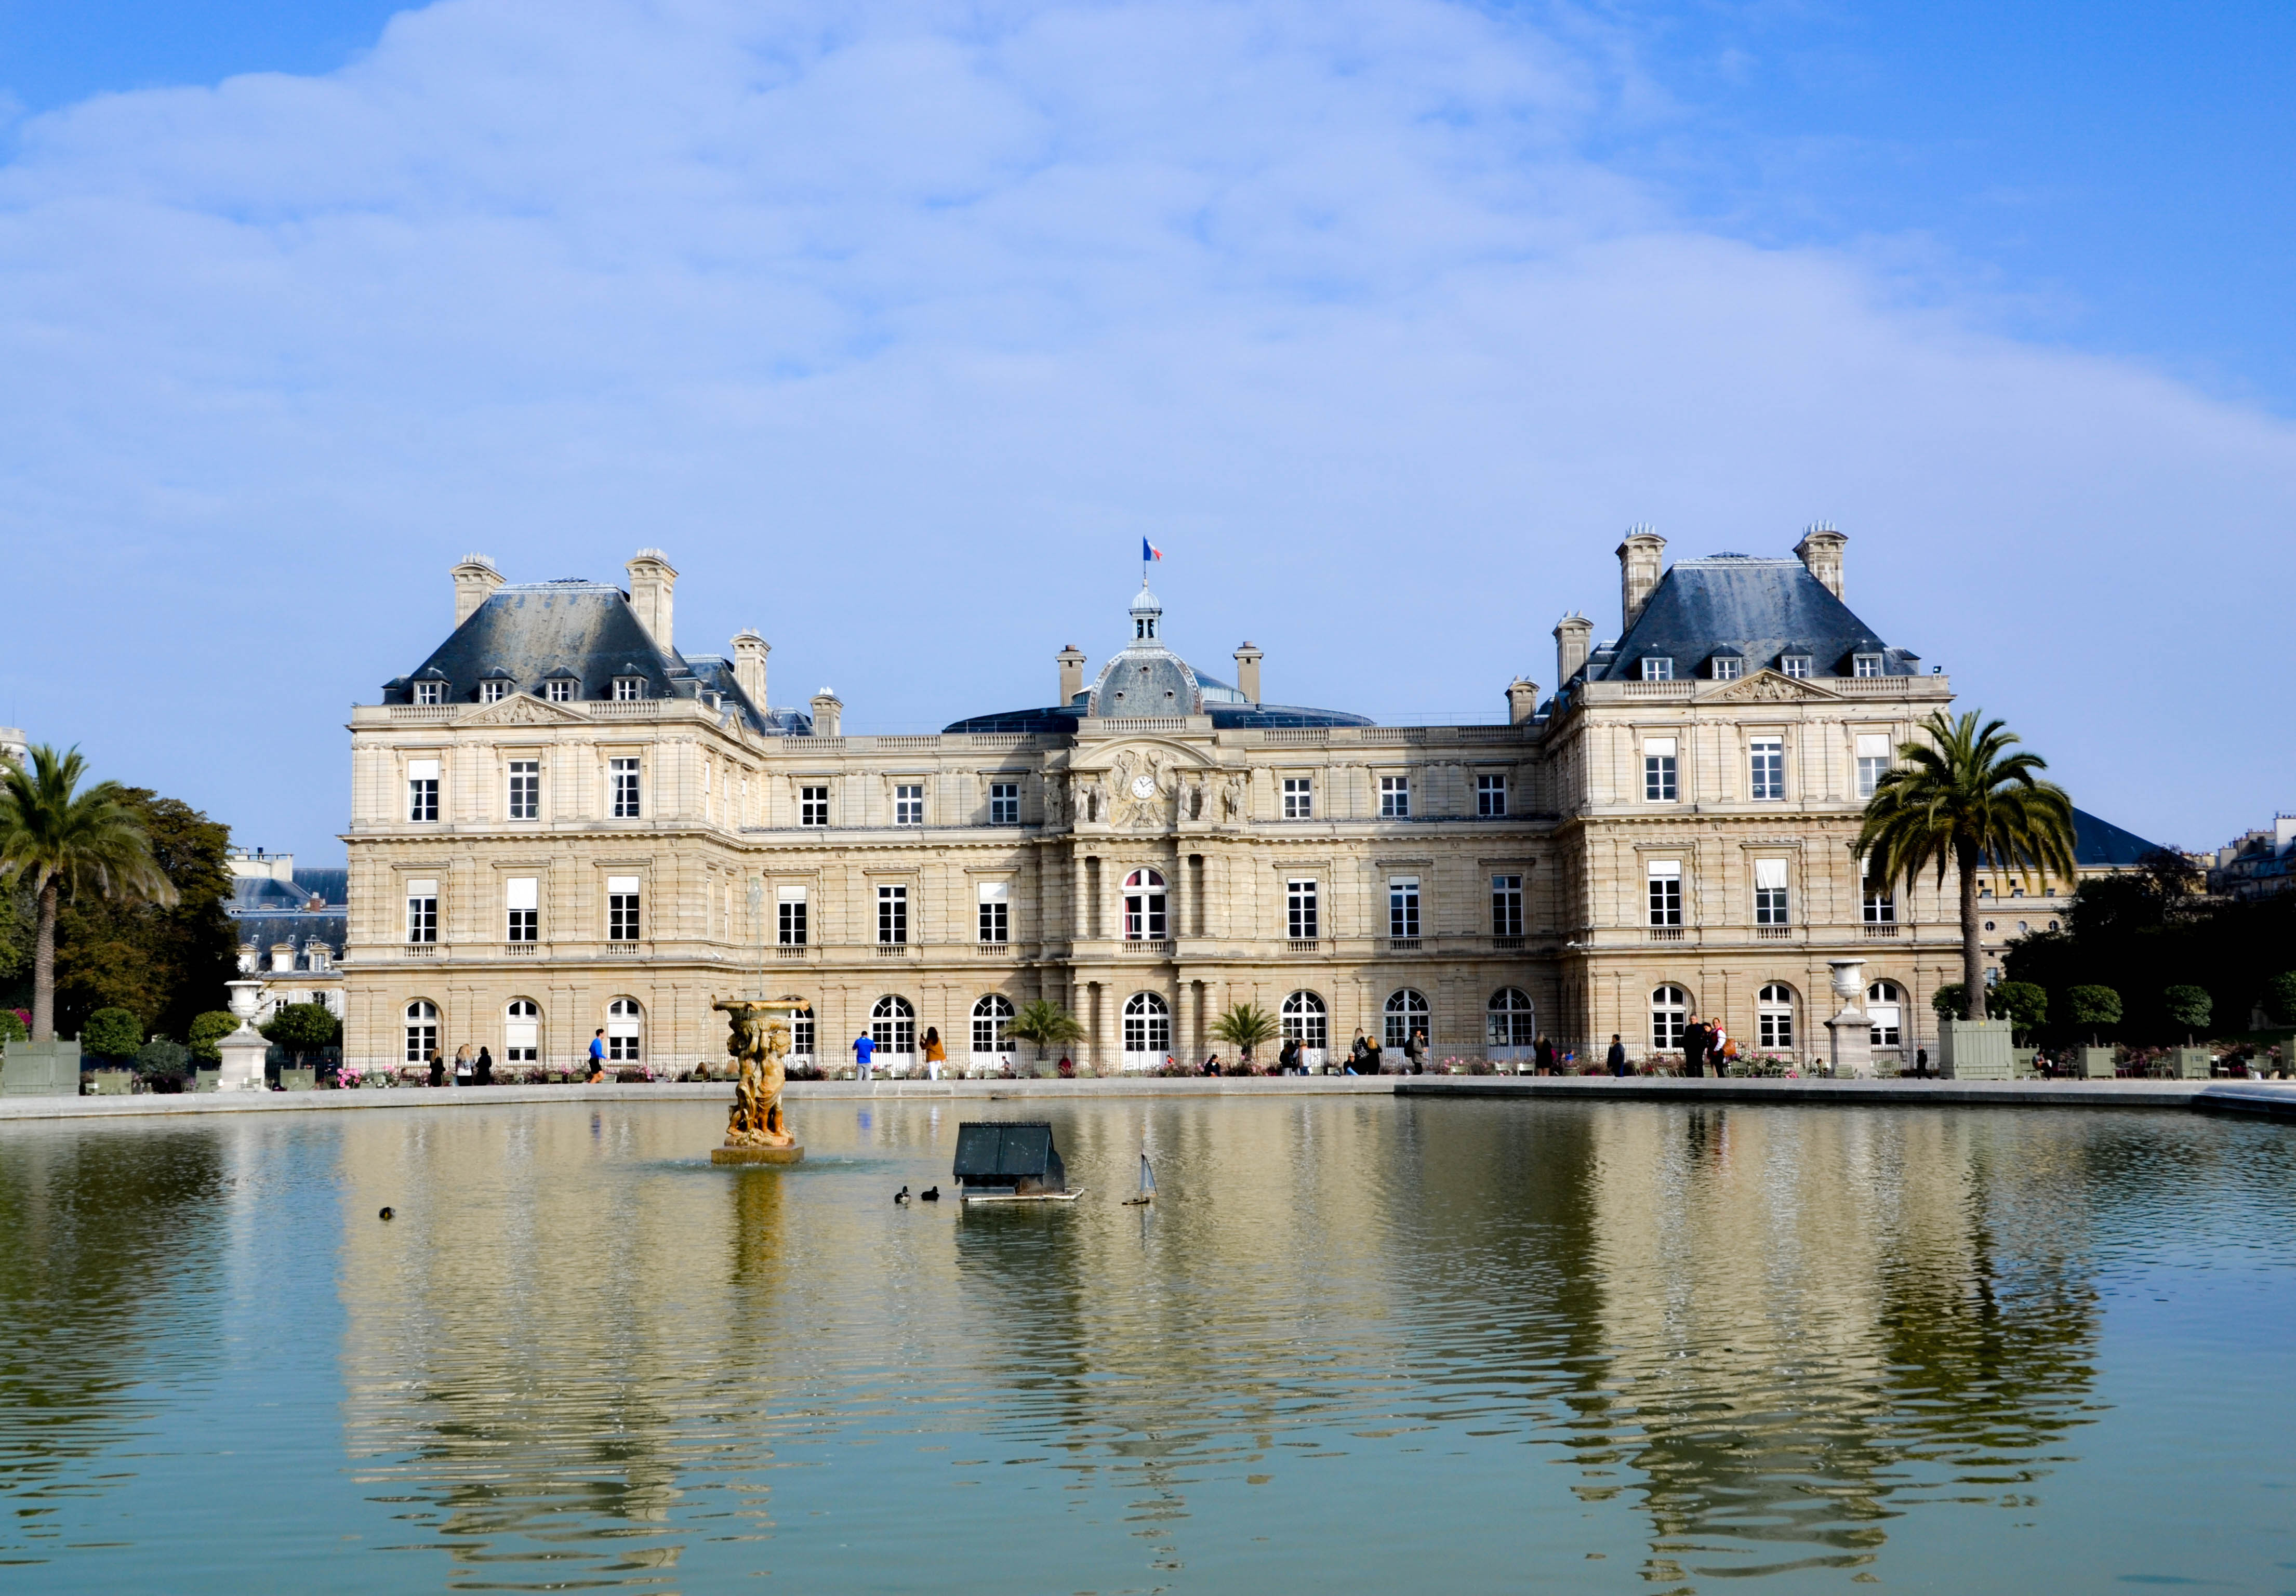 Luxembourg Gardens